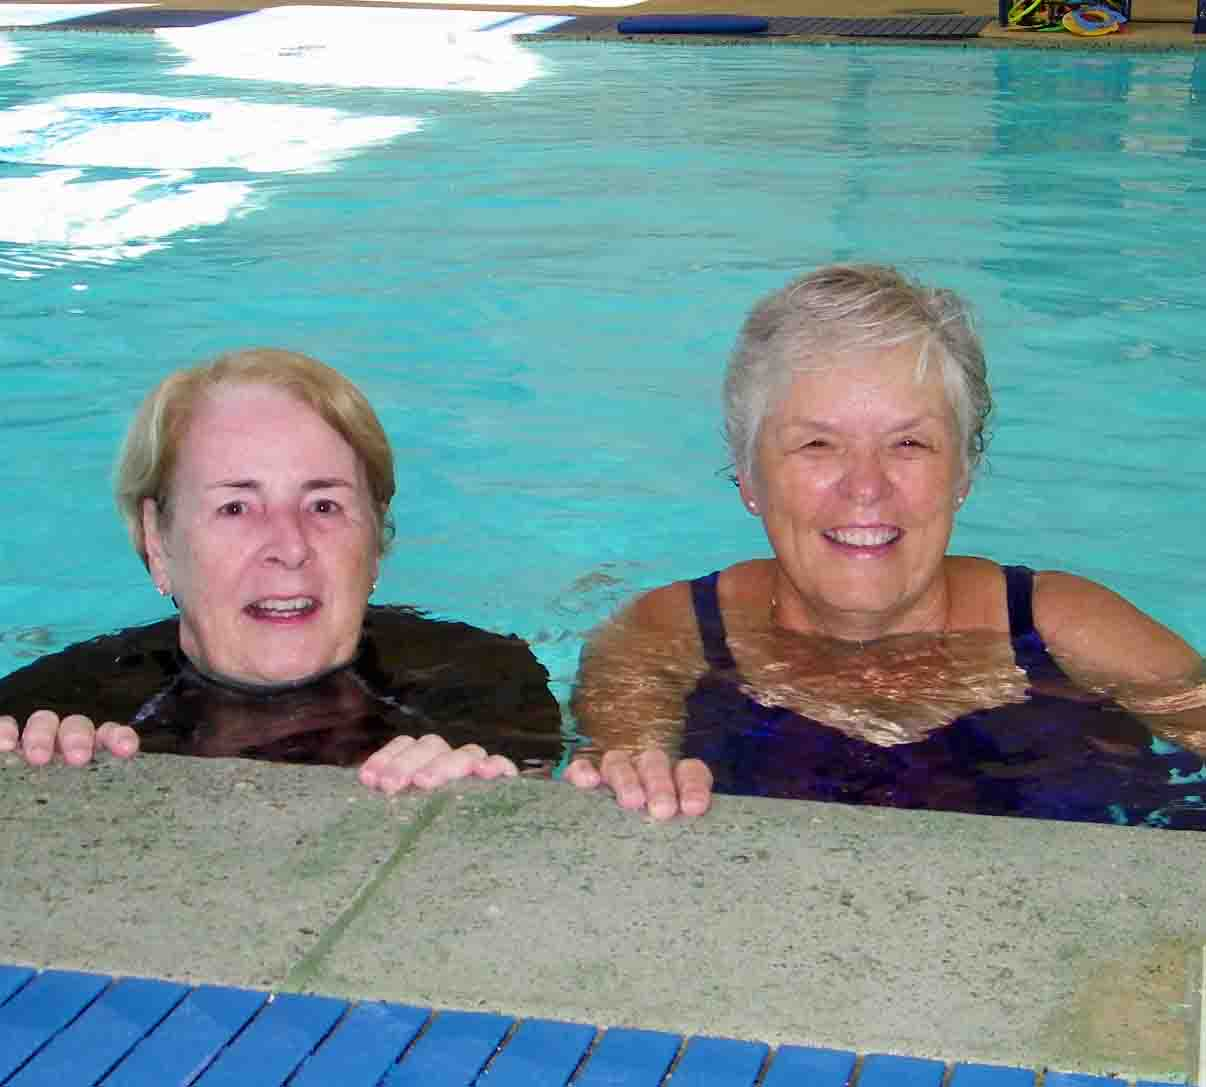 All ages benefit from swimming at the Y.